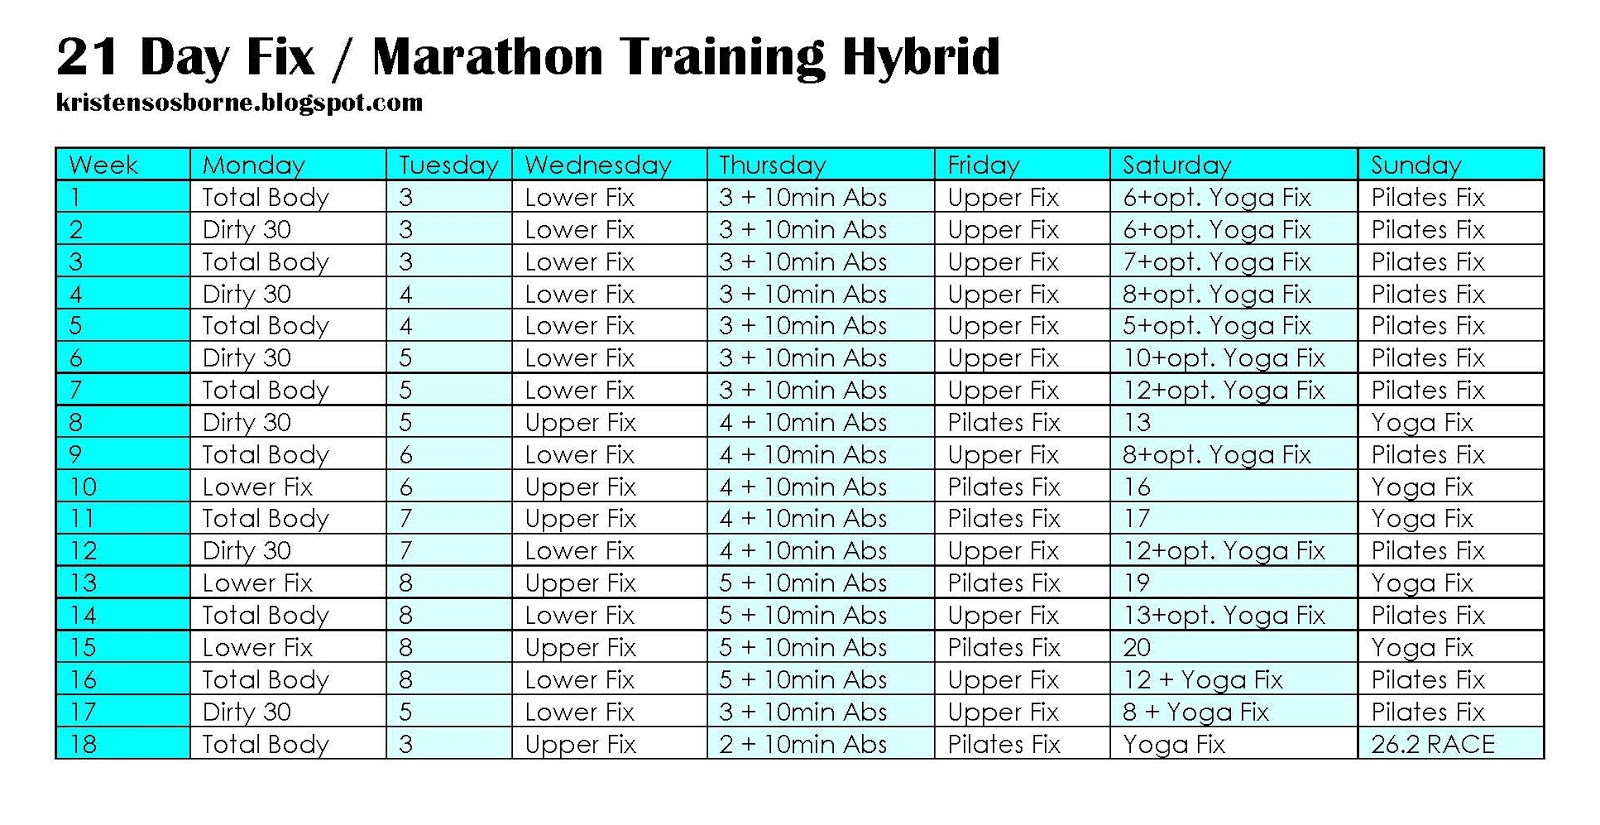 Fit Fierce Fight: 21 Day Fix Marathon Hybrid Training Schedule